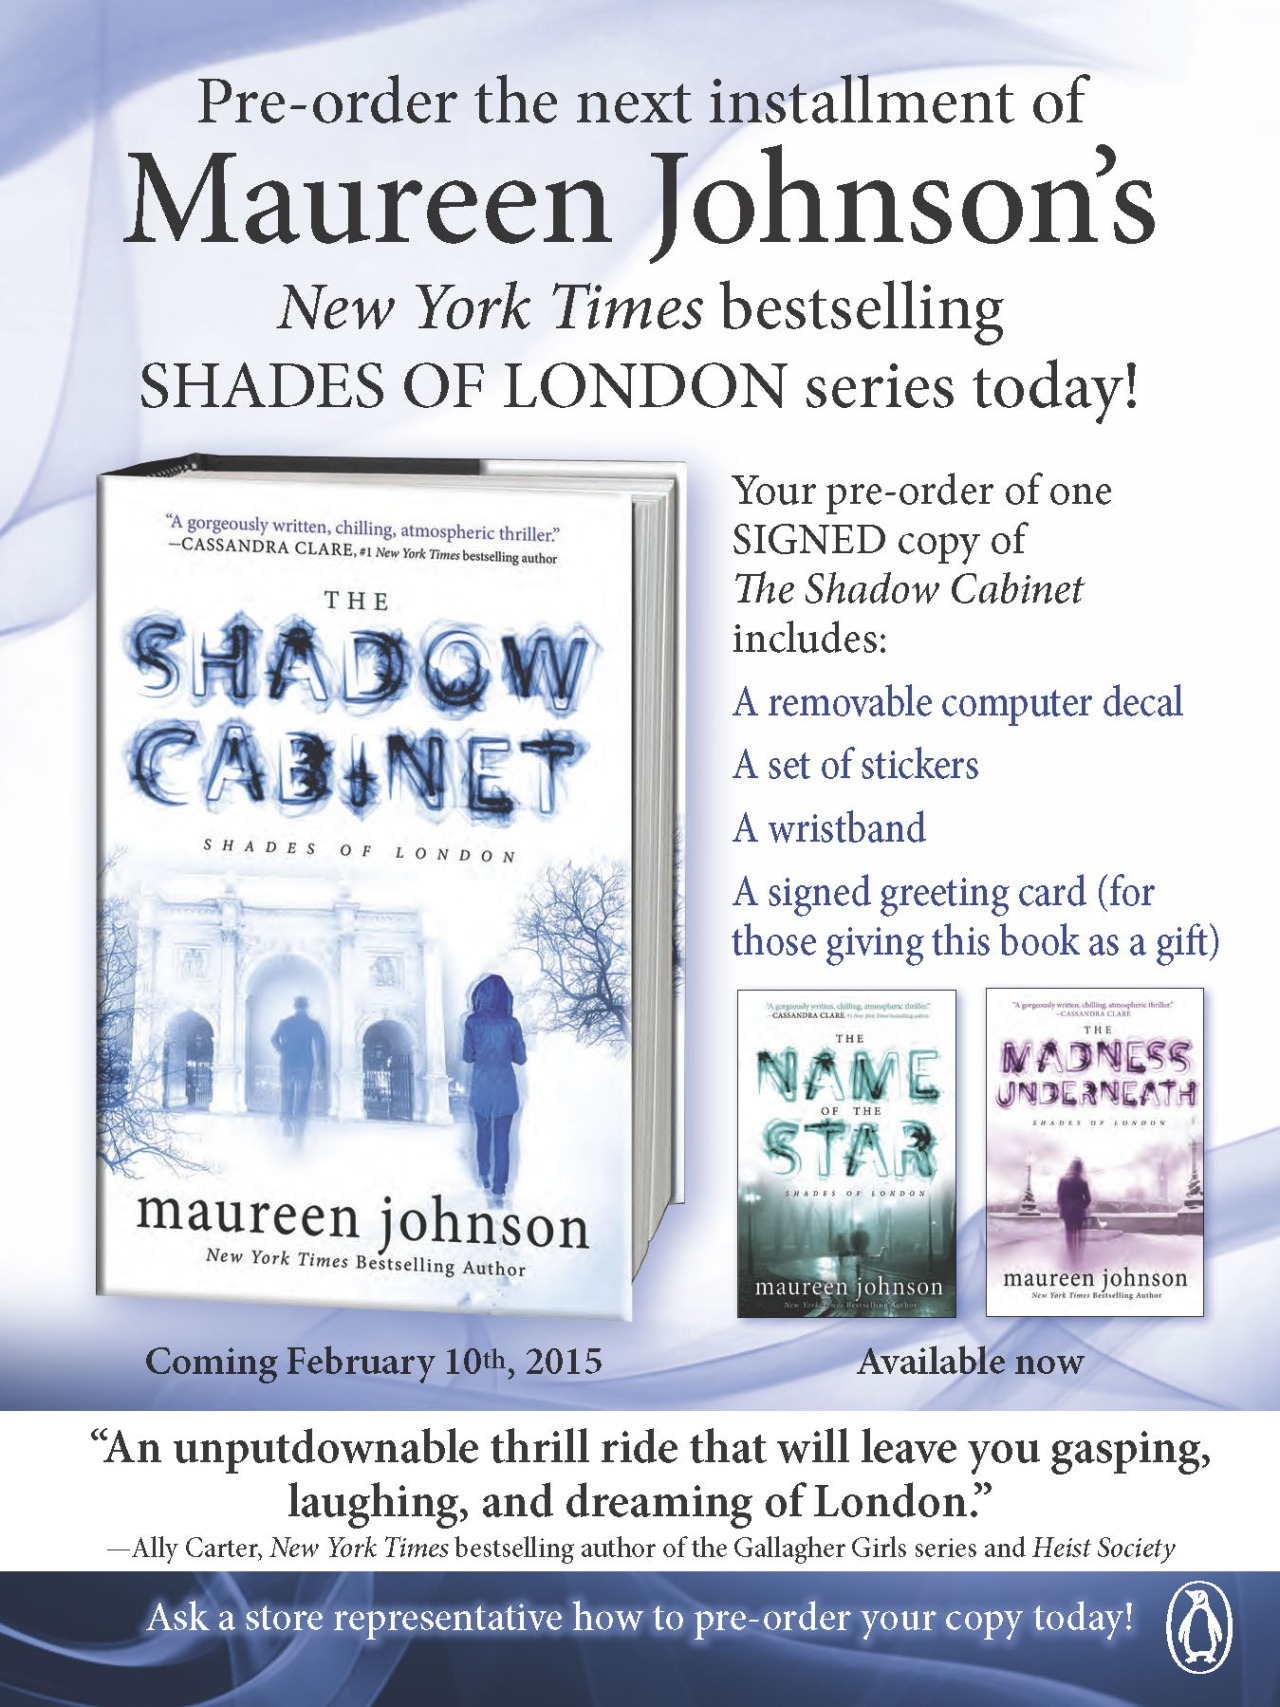 penguinteen: The Shadow Cabinet by Maureen Johnson is available for pre-order! Pre-order the book from the select retailers below and you'll receive a SIGNED copy of The Shadow Cabinet, a computer decal, a set of removable sticker, a wristband and a notecard (for those giving the book as a gift)! Below is a list of participating stores. NOTE: Not all stores take on-line preorders, please visit the stores site or give them a call to double check with the stores themselves to make sure this option is available and that you will receive your prize packs!   CANADA Mable's Fables 662 Mount Pleasant Road Toronto ON M4S 2N3 416.322.0438 CALIFORNIA Books Inc. in Opera Plaza 601 Van Ness San Francisco, CA 94102 415.776.1111 Books Inc. in Burlingame  1375 Burlingame Ave Burlingame, CA 94010 650.685.4911 Books Inc. in the Marina 2251 Chestnut St San Francisco, CA 94123 415.931.3633  Books Inc. in Palo Alto 855 El Camino Real #74 Town & Country Village Palo Alto, CA 94301 650.321.0600  Books Inc. in Mountain View 301 Castro Street Mountain View, CA 94041 650.428.1234  Books Inc. in Alameda 1344 Park St Alameda, CA 94501 510.522.2226 Books Inc. in Laurel Village 3515 California St San Francisco, CA 94118 415.221.3666 Books Inc. in Berkeley 1760 4th Street Berkeley, CA  94710 510.525.7777  Books Inc 1501 Vermont St San Francisco, CA 94107 415-920-9385  Copperfield's Books – San Rafael 850 4th Street San Rafael, CA 94901 415-524-2800 Copperfield's Books – Napa 3740 Bel Aire Plaza Napa, CA 94558 707-252-8002 Copperfield's Books – Healdsburg 104 Matheson Street Healdsburg, CA 95448 707-433-9270 Copperfield's Books – Calistoga 1330 Lincoln Ave Calistoga, CA 94515 707-942-1616 Copperfield's Books – Petaluma 140 Kentucky Street Petaluma CA 94952 707-762-0563 Copperfield's Books – Sebastopol 138 North Main Street Sebastopol, CA 95472 707-823-2618 Copperfield's Books – Santa Rosa 775 Village Court Santa Rosa, CA 95405 707-578-8938 Mysterious Galaxy 7051 Clairemont Mesa Blvd San Diego CA 92111 858-268-4747 Once Upon a Time Bookstore 2207 Honolulu Ave Montrose CA 91020 818-248-9668 Pages 904 Manhattan Ave. Manhattan Beach, CA 90266 310-318-0900 Vroman's Bookstore 695 E Colorado Blvd Pasadena, CA 91101 626-449-5320 Vroman's Hasting Ranch 3729 E Foothill Blvd Pasadena, CA 91107 626-351-0828 COLORADO Boulder Book Store 1107 Pearl Street Boulder, CO 80302 303-447-2074 CONNECTICUT RJ Julia Booksellers 768 Boston Post Rd. Madison, CT 06443 203-245-3959 GEORGIA Little Shop of Stories 133A East Court Square Decatur, GA 30030 404-373-6300 ILLINOIS Anderson's Bookshop 123 W. Jefferson. Naperville, IL 60540 630-355-2665 Anderson's Bookshop Downer's Grove 5112 Main Street. Downvers Grove, IL 60515 630-963-2665 The Book Stall 811 Elm St Winnetka, IL 60093 847-446-8880 The Book Cellar 4736-38 N Lincoln Ave Chicago IL 60625 773-293-2665   KENTUCKY Joseph Beth Booksellers – Lexington 161 Lexington Green Circle Lexington, KY 40503 859-273-2911 Joseph Beth Booksellers – Crestview Hills 2785 Dixie Highway Crestview Hills, KY 41017 859-912-7860   MASSACHUSETTS Andover Books 89R Main Street Andover, MA01810 978-475-0143 Harvard Book Store 1256 Massachusetts Ave Cambridge MA 02138 617-661-1515 Wellesley Books 82 Central Street Wellesley MA 02482 781-431-1160 MICHIGAN Schuler Books – Grand Rapids 2660 28th Street SE Grand Rapids MI 49512 616-942-2561 Schuler Books – Meridian Mall 1982 Grand River Ave Okemos MI 48864 517-349-8088 Schuler Books – Eastwood Towne Center 2820 Towne Center Blvd Lansing MI 48912 517-316-7495 Schuler Books – Ann Arbor 2513 Jackson Ave Ann Arbor MI 48103 MINNESOTA Red Balloon Bookshop 891 Grand Ave. St. Paul, MN 55105 651-224-8320 NEW YORK Books of Wonder 18 West 18th St. New York, NY 10011 800-207-6968 Oblong Books - Millerton 26 Main Street Millerton, NY 12546 518-789-3797 Oblong Books – Rhinebeck 6422 Montgomery St Rhinebeck, NY 12572 845-876-0500   NEW HAMPSHIRE Water Street Bookstore, Inc 125 Water Street Exeter, NH 03833 603-778-9731   NORTH CAROLINA Flyleaf Books 752 Martin Luther King Jr. Blvd. Chapel Hill, NC 27514 919-942-7373 Malaprops 55 Haywood Street Asheville, NC 28801 800-441-9829 Quail Ridge Books 3522 Wade Avenue Raleigh NC 27607 919-828-1588 OHIO Joseph Beth Booksellers – Cincinnati 2692 Madison Road Cincinnati, OH 45208 513-396-8960 PENNSYLVANIA Doylestown Bookshop 16 S Main Street Doylestown, PA 18901 215-230-7610 Towne Book Center & Café 220 Plaza Drive, Suite B-3 Collegeville, PA 19426 610-454-0640   TEXAS Book People Bookstore 603 N. Lamar Austin, TX 78703 512-472-5050 Blue Willow Bookshop 14532 Memorial Drive Houston, TX 77079 281.497.8675 Murder by the Book 2342 Bissonnet Houston, TX 77005 713-524-8597   UTAH The King's English Bookshop 1511 South 1500 East Salt Lake City, UT 84105 801-484-9100 VIRGINIA Hooray for Books 1555 King Street Alexandria, VA 22314 703-548-4092 WASHINGTON University Book Store 4326 University Way NE Seattle, WA 98105 206-634-3400 THE TIME HAS COME MY FRIENDS. The Shadow Cabinet is out on February 10, and you can pre-order and get: - A SIGNED BOOK - SPECIAL STICKERS THAT I HAVE DESIGNED FOR YOU - A SPECIAL COMPUTER DECAL I HAVE DESIGNED FOR YOU - A WRISTBAND THAT GLOWS - A NOTE WRITTEN BY ME YOU CAN PUT IN A HOLIDAY STOCKING TO TELL PEOPLE YOU GOT THEM THE BOOK AND IT WILL COME TO THEM IN FEBRUARY You get these special things by ordering from the stores above! This is all US and Canada-based, but anyone can order. There will be signed books in the UK—more info on that soon. Also, I'm about to launch my NEW WEBSITE which will contain EVEN MORE INFORMATION about this pre-order and the book itself!